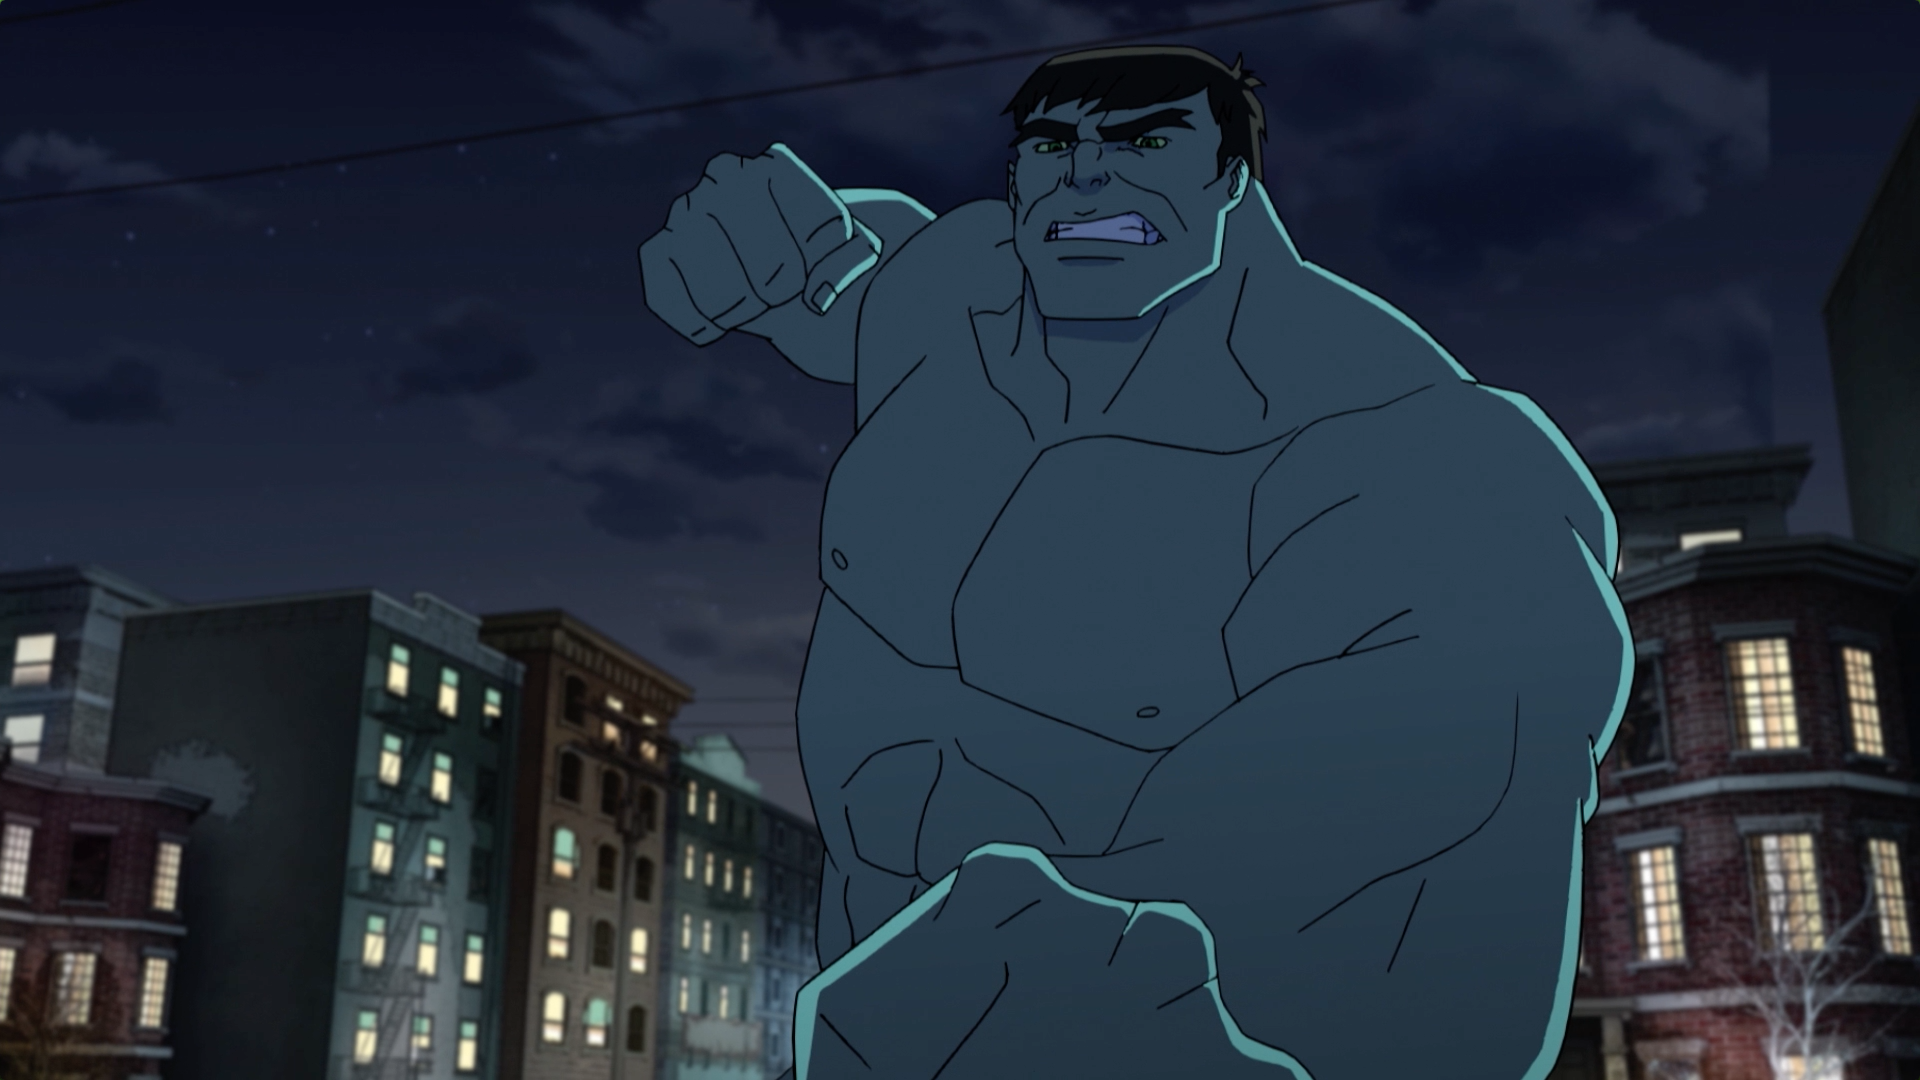 Es tan Hulk - Marvel